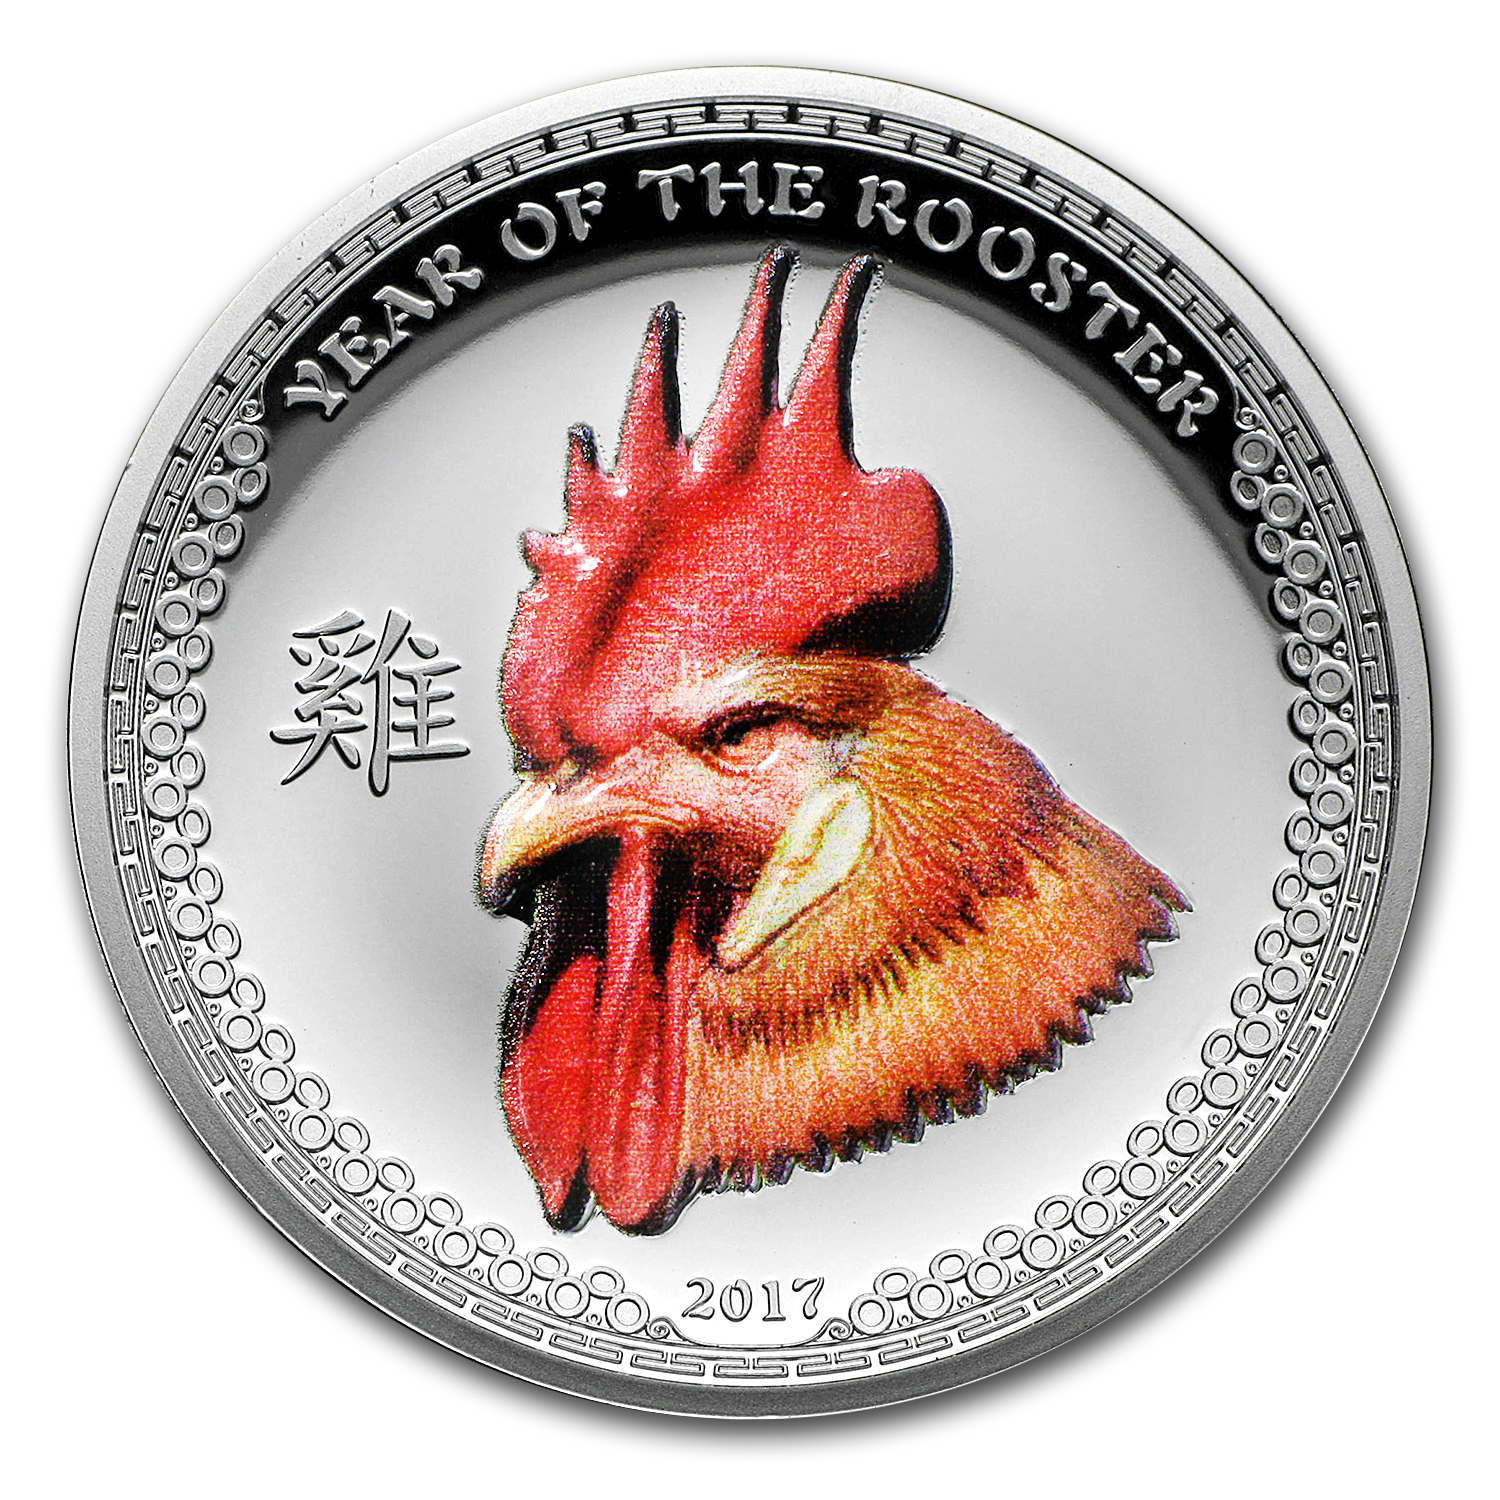 2017 Palau 1 oz Silver $5 Year of the Rooster UHR (Colorized)